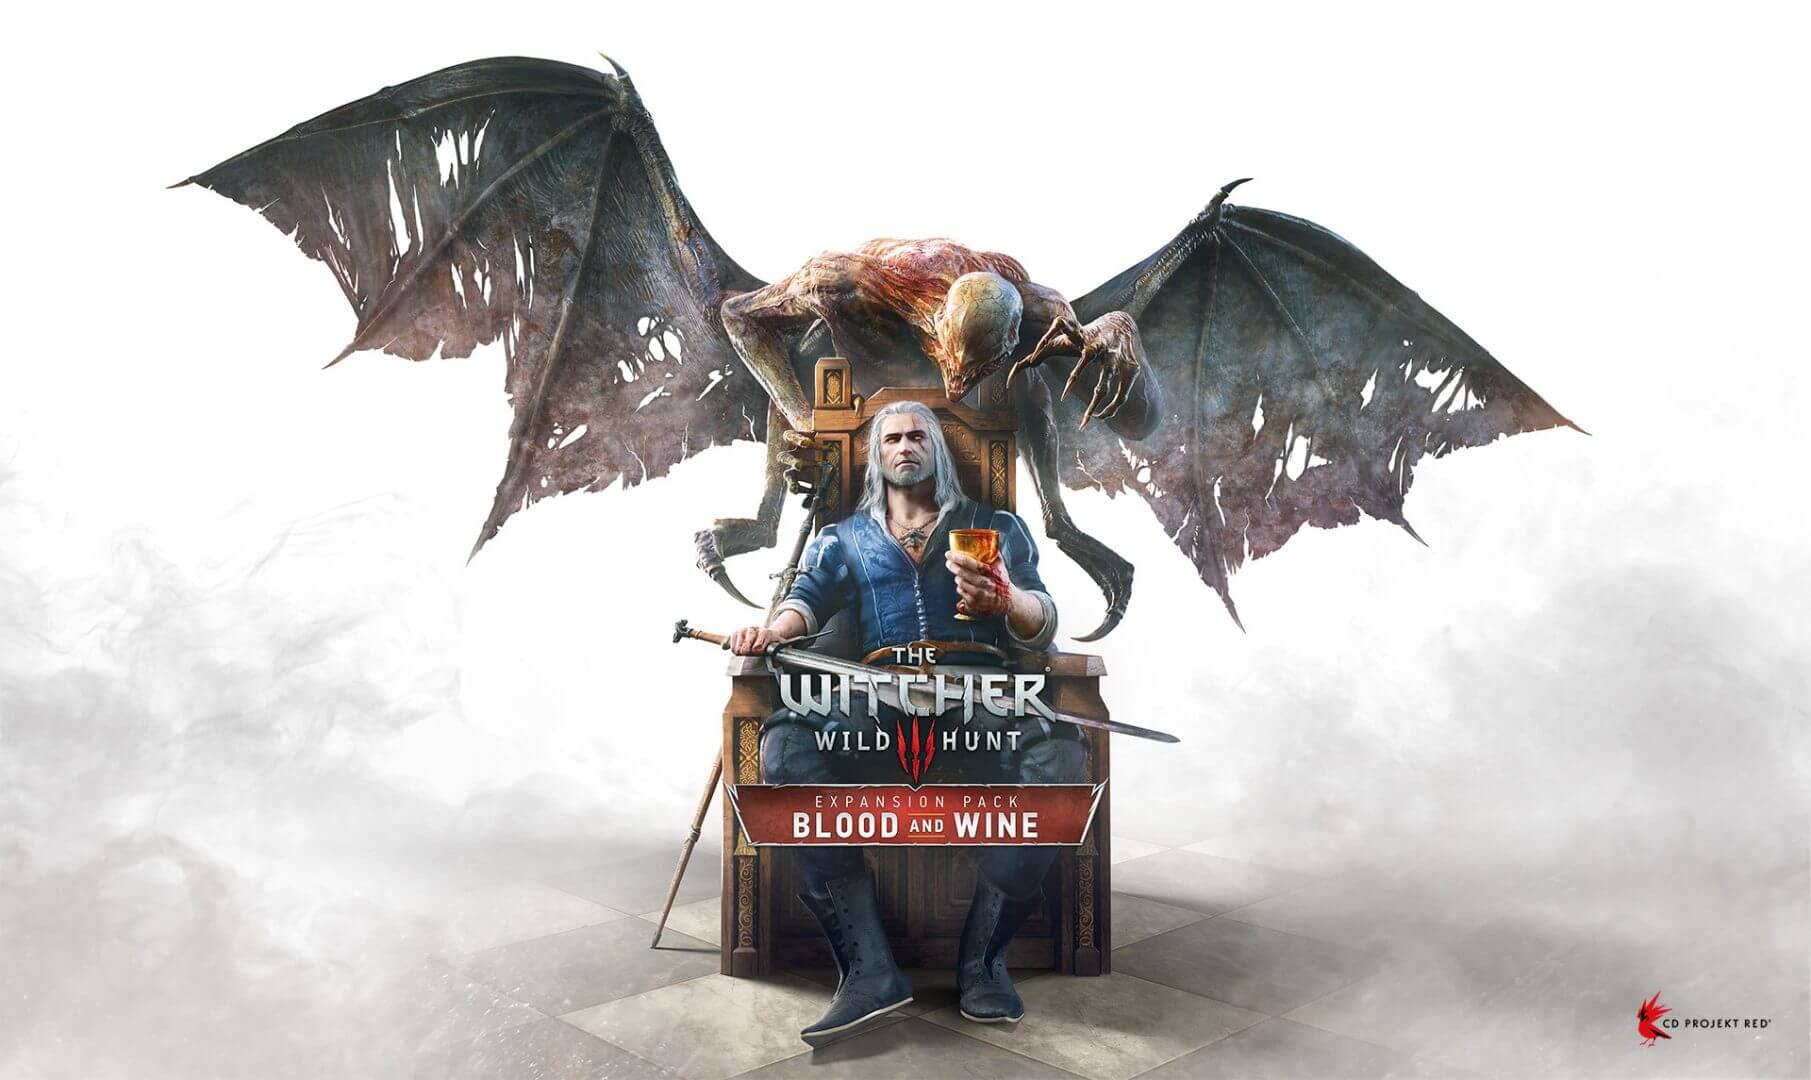 Witcher 3 blood and wine dlc gets official release date the witcher 3 blood and wine dlc gets official release date solutioingenieria Gallery